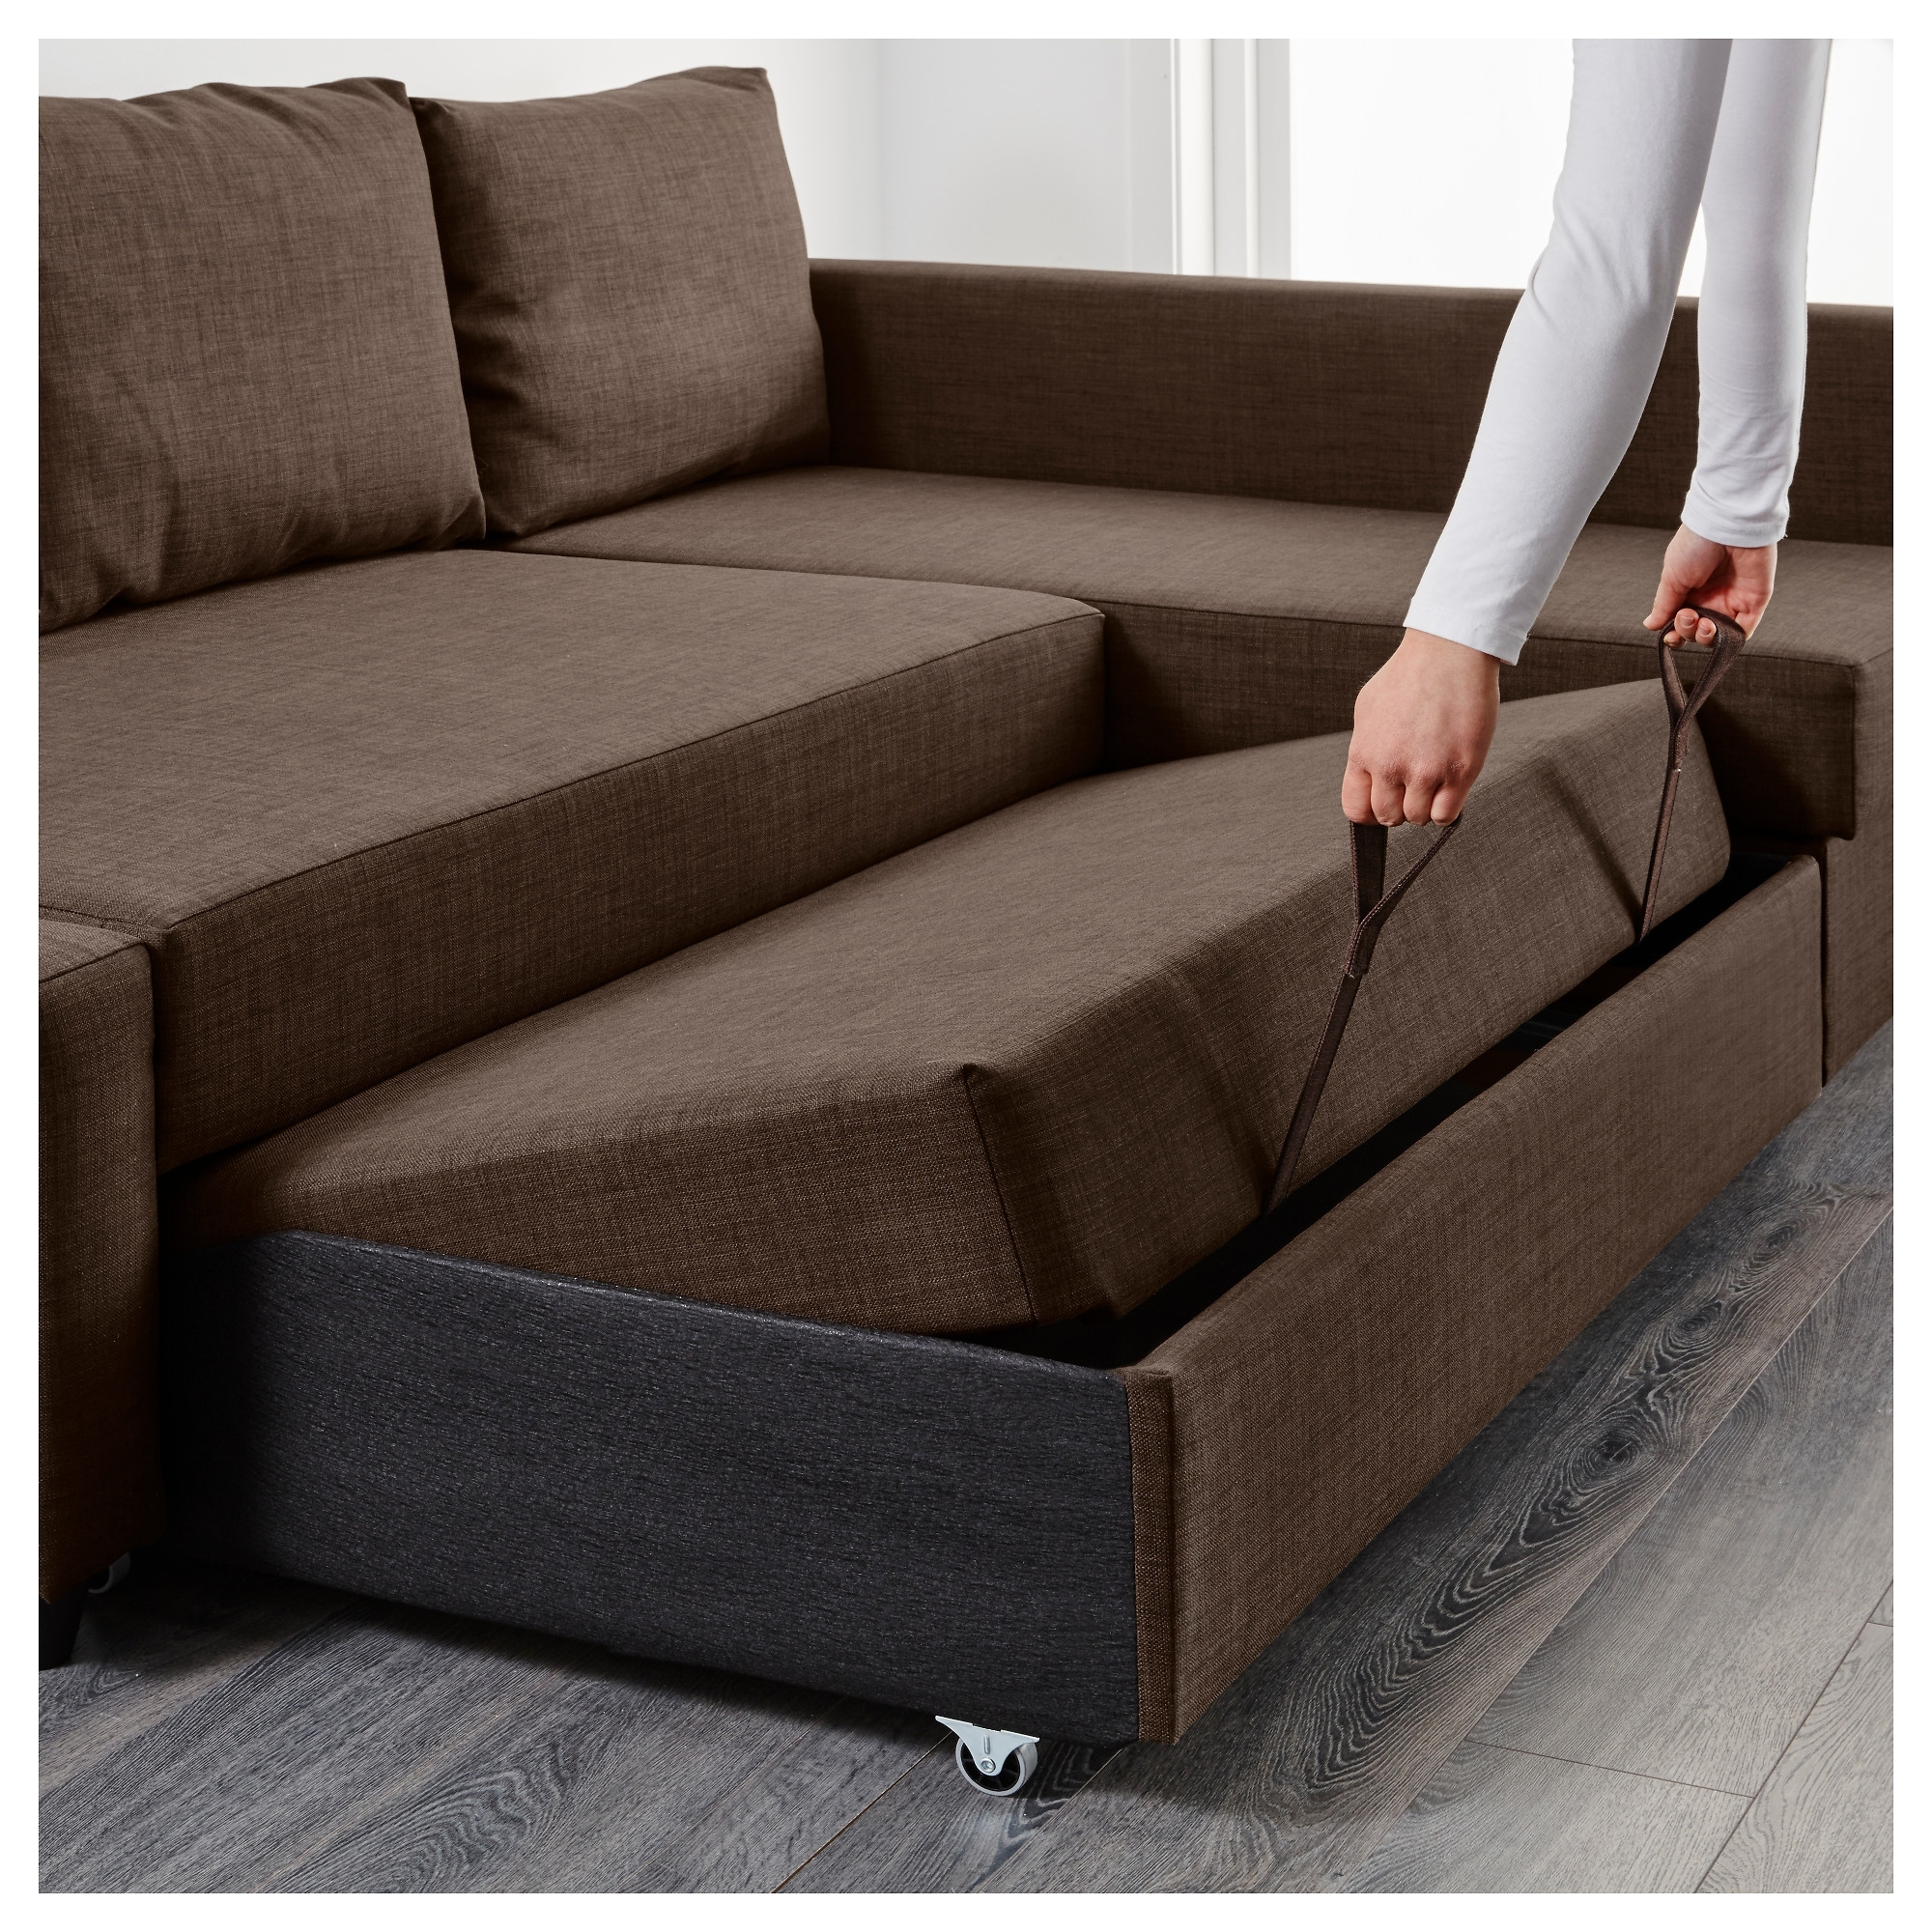 Trendy Friheten Sleeper Sectional,3 Seat W/storage – Skiftebo Dark Gray For Sectional Sofas That Turn Into Beds (View 12 of 15)